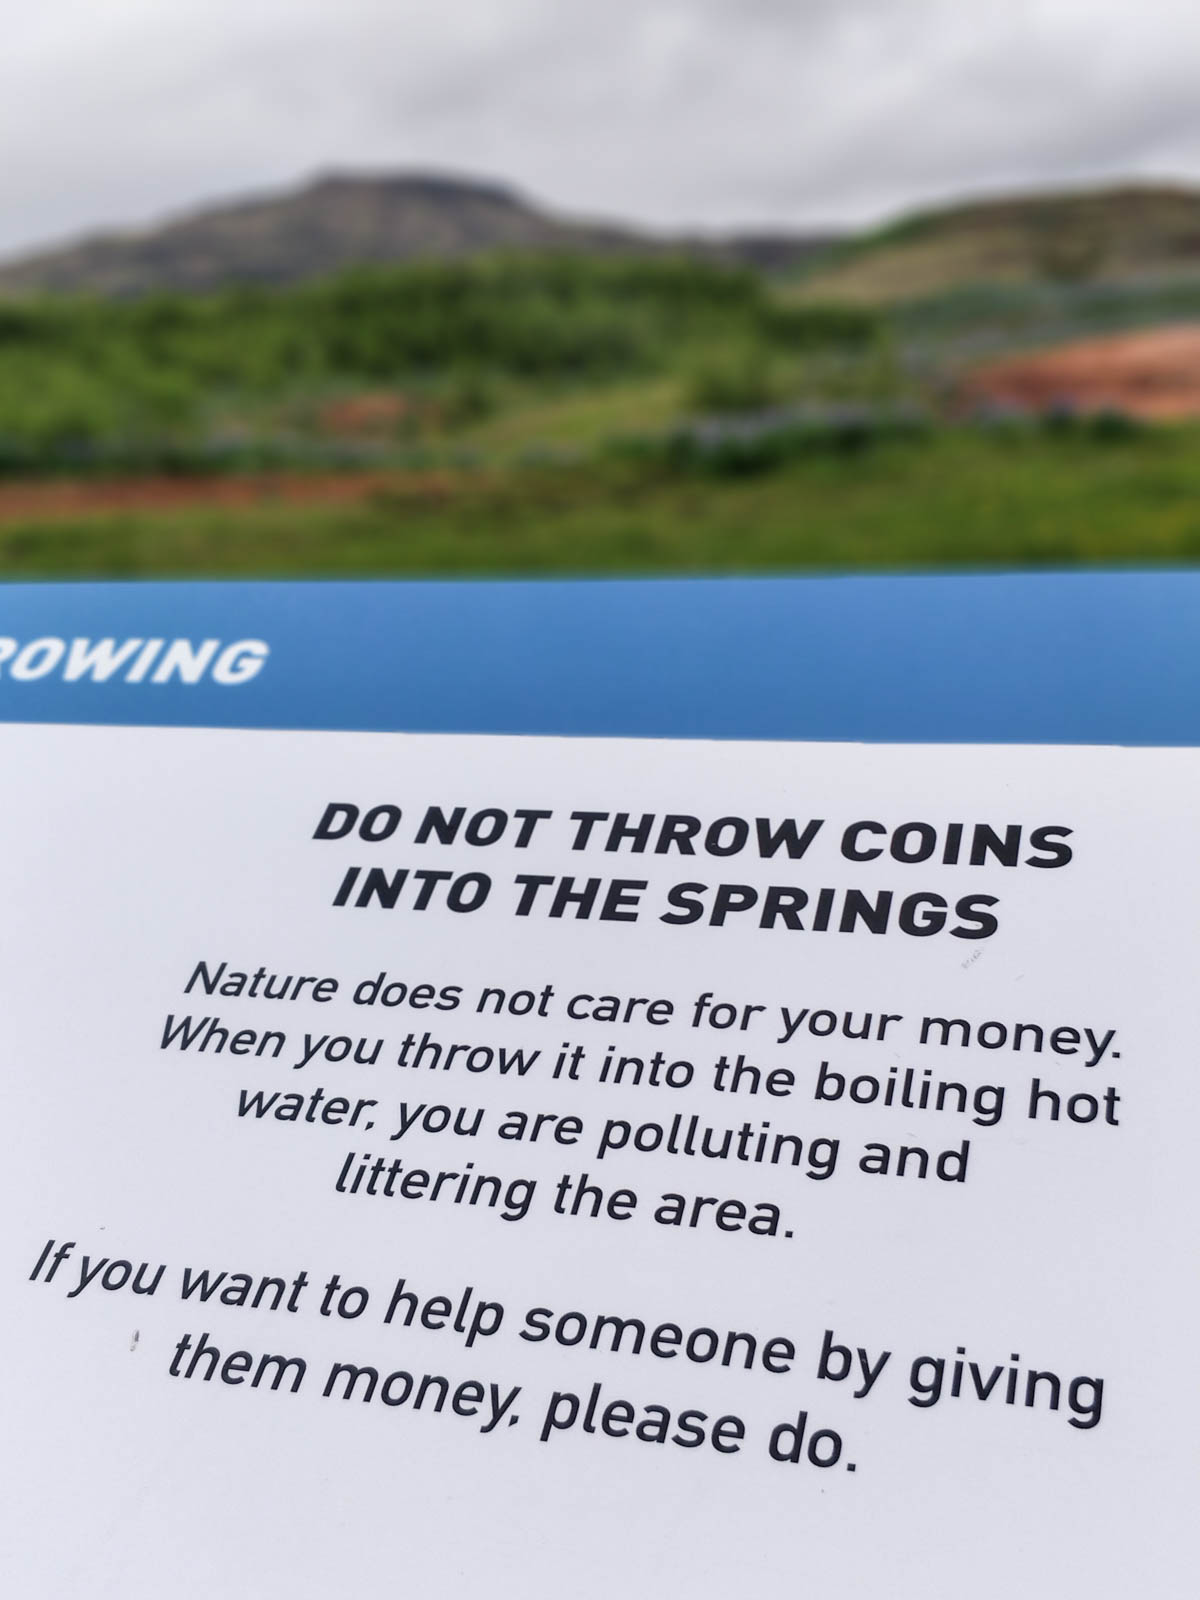 Schild: Do not throw coins into the springs. Nature does not care for your money. When you throw it into the boiling hot water, you are polluting and littering the area. If you want to help someone by giving them money, please do.